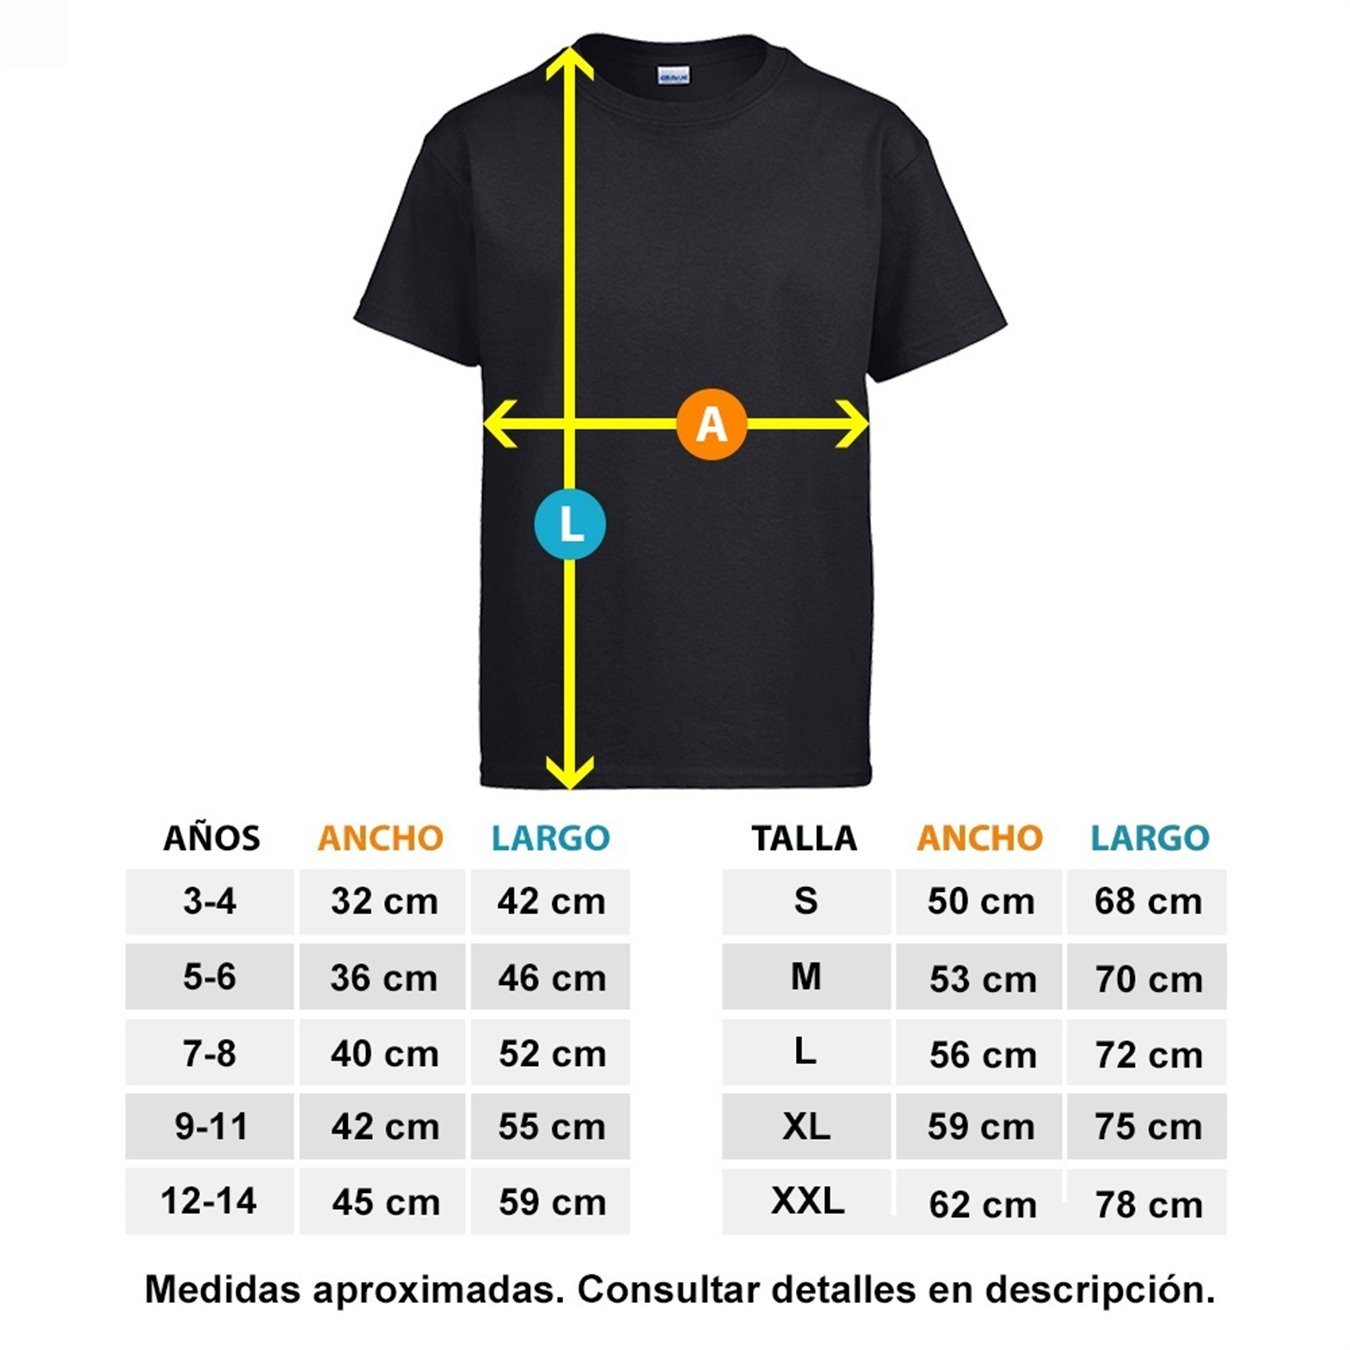 Camiseta NBA Clippers Baloncesto Basketball fan I Love This Game: Amazon.es: Ropa y accesorios